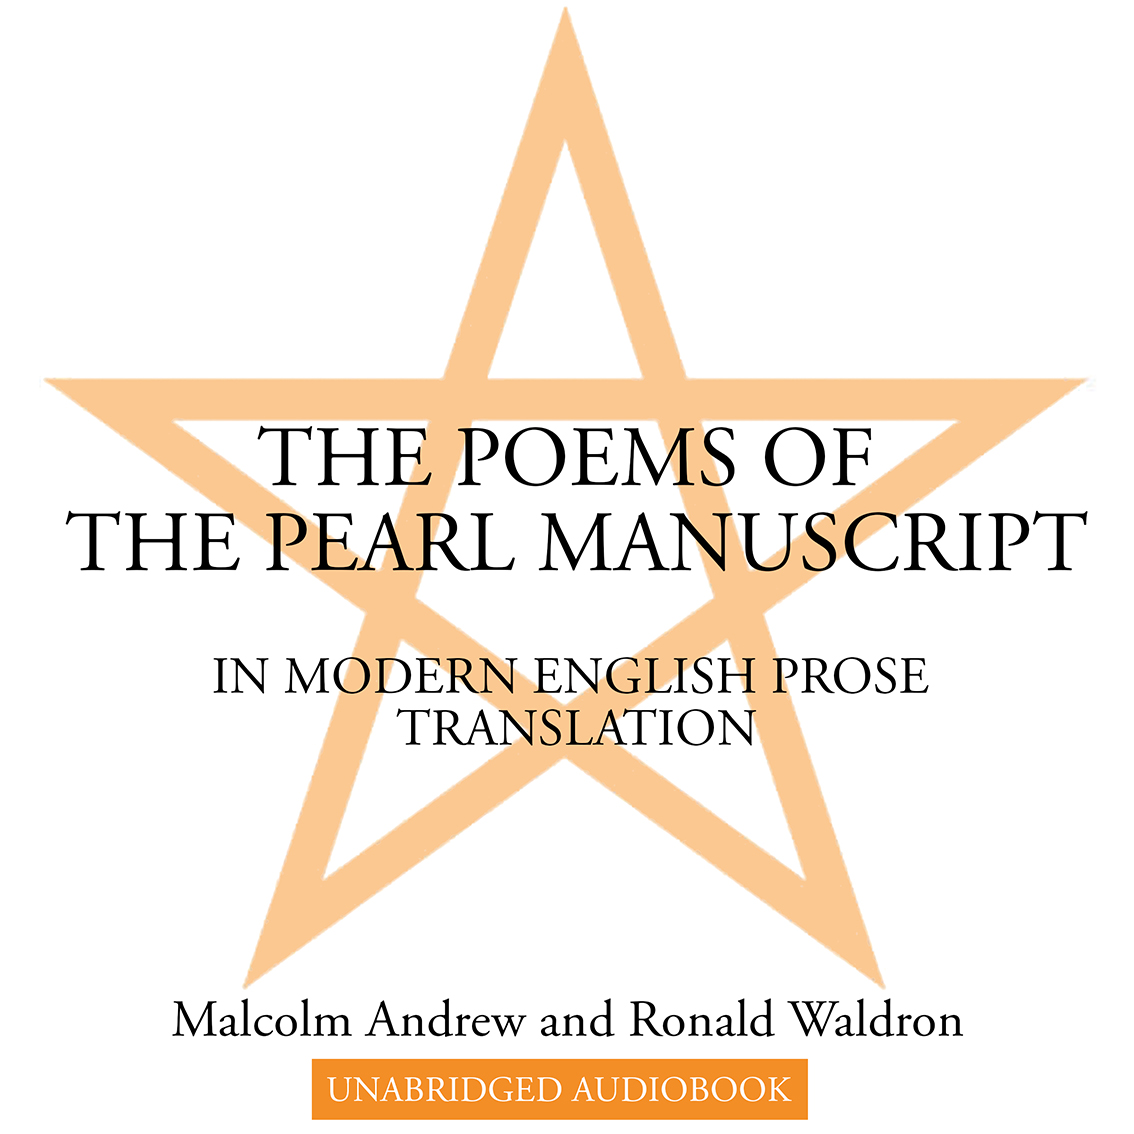 The Poems of the Pearl Manuscript in Modern English Prose Translation. Authors: Malcolm Andrew Ronald Waldron. Unabridged audiobook.